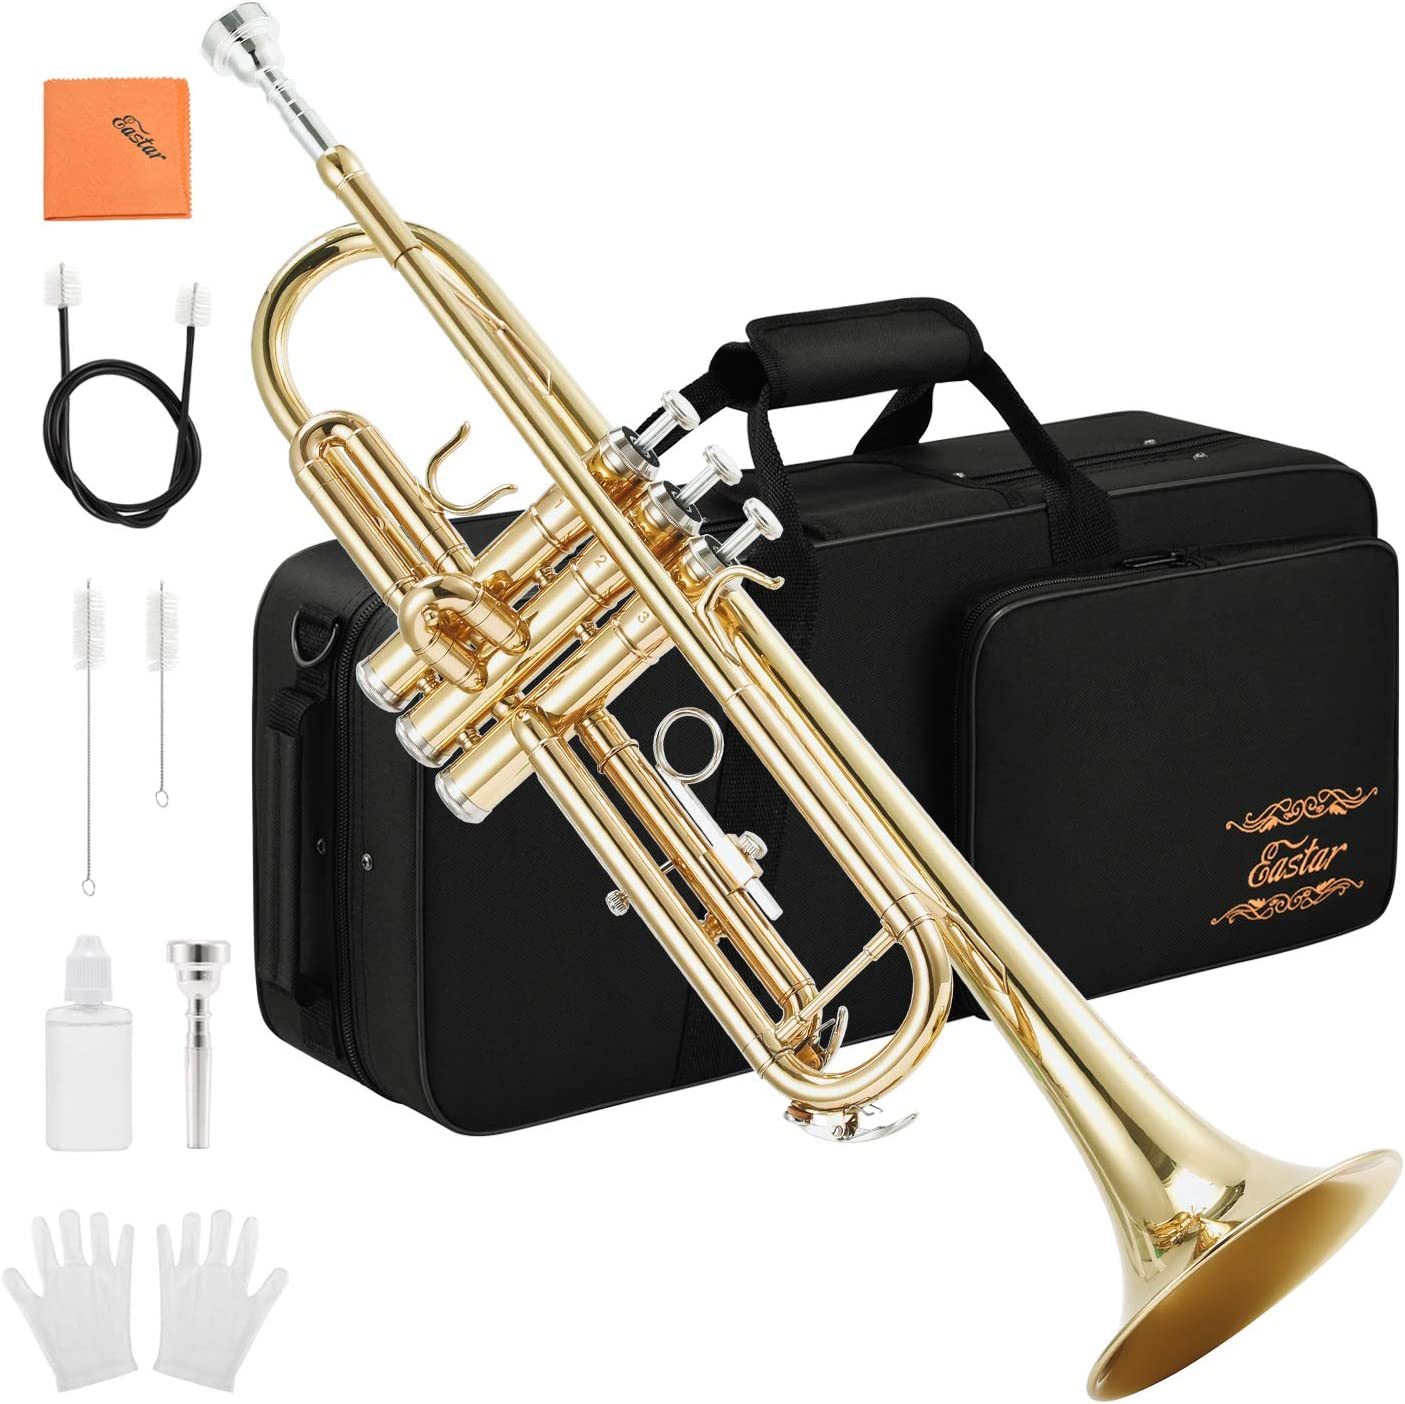 Eastar Gold Trumpet Brass Standard Bb Trumpet Set Etr-380